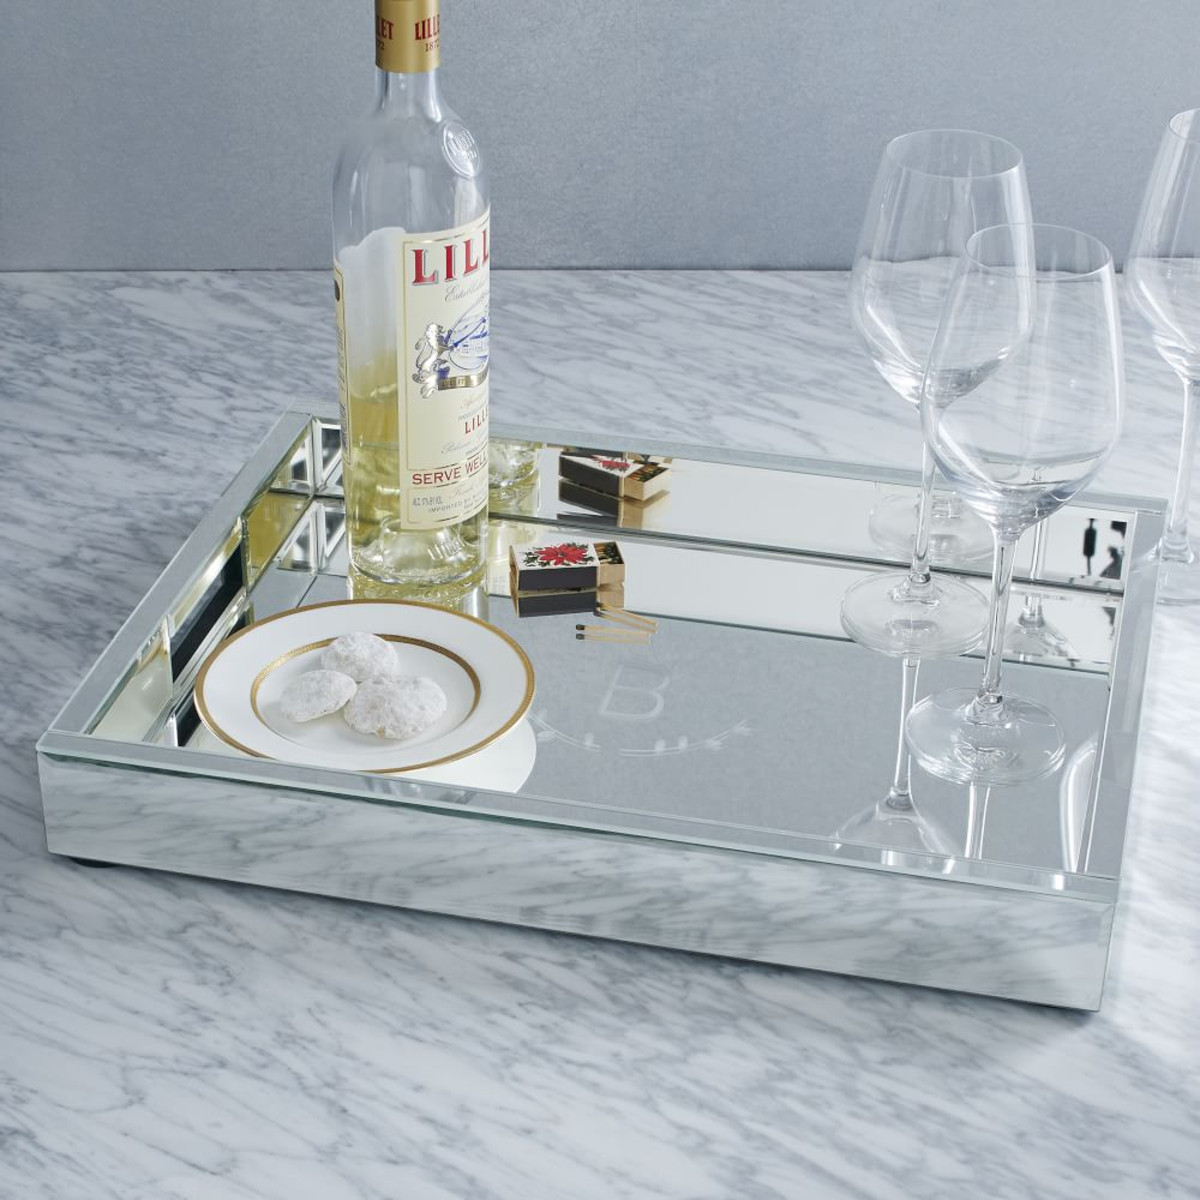 Also The Trims Of Our Tray Are Designed With White Beautiful Pearls Which Makes Your More Charming Mirrored Surface Sy Base Material